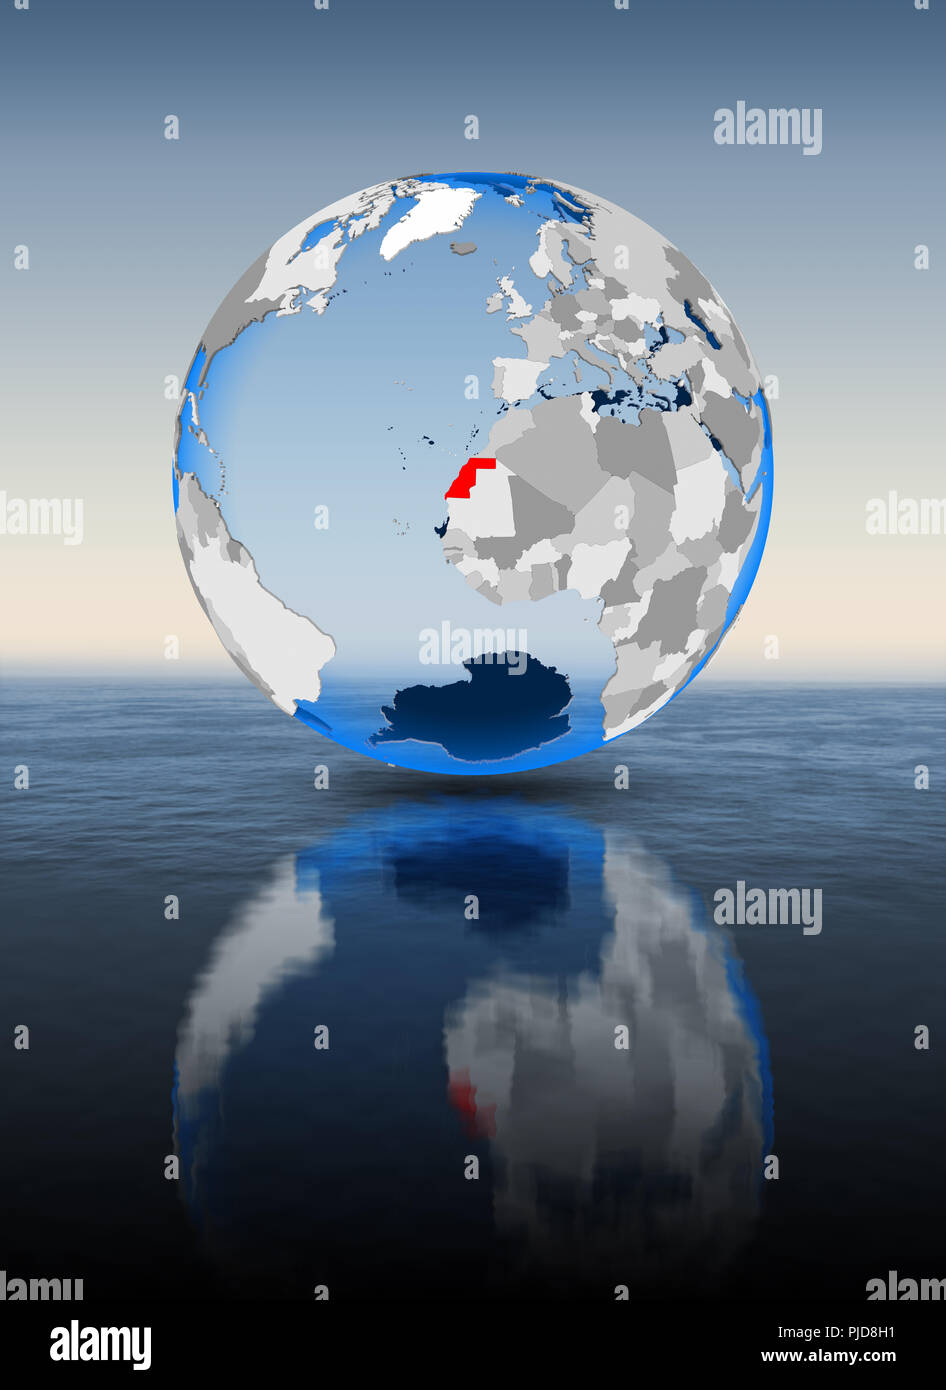 Western Sahara In red on globe floating in water. 3D illustration. Stock Photo